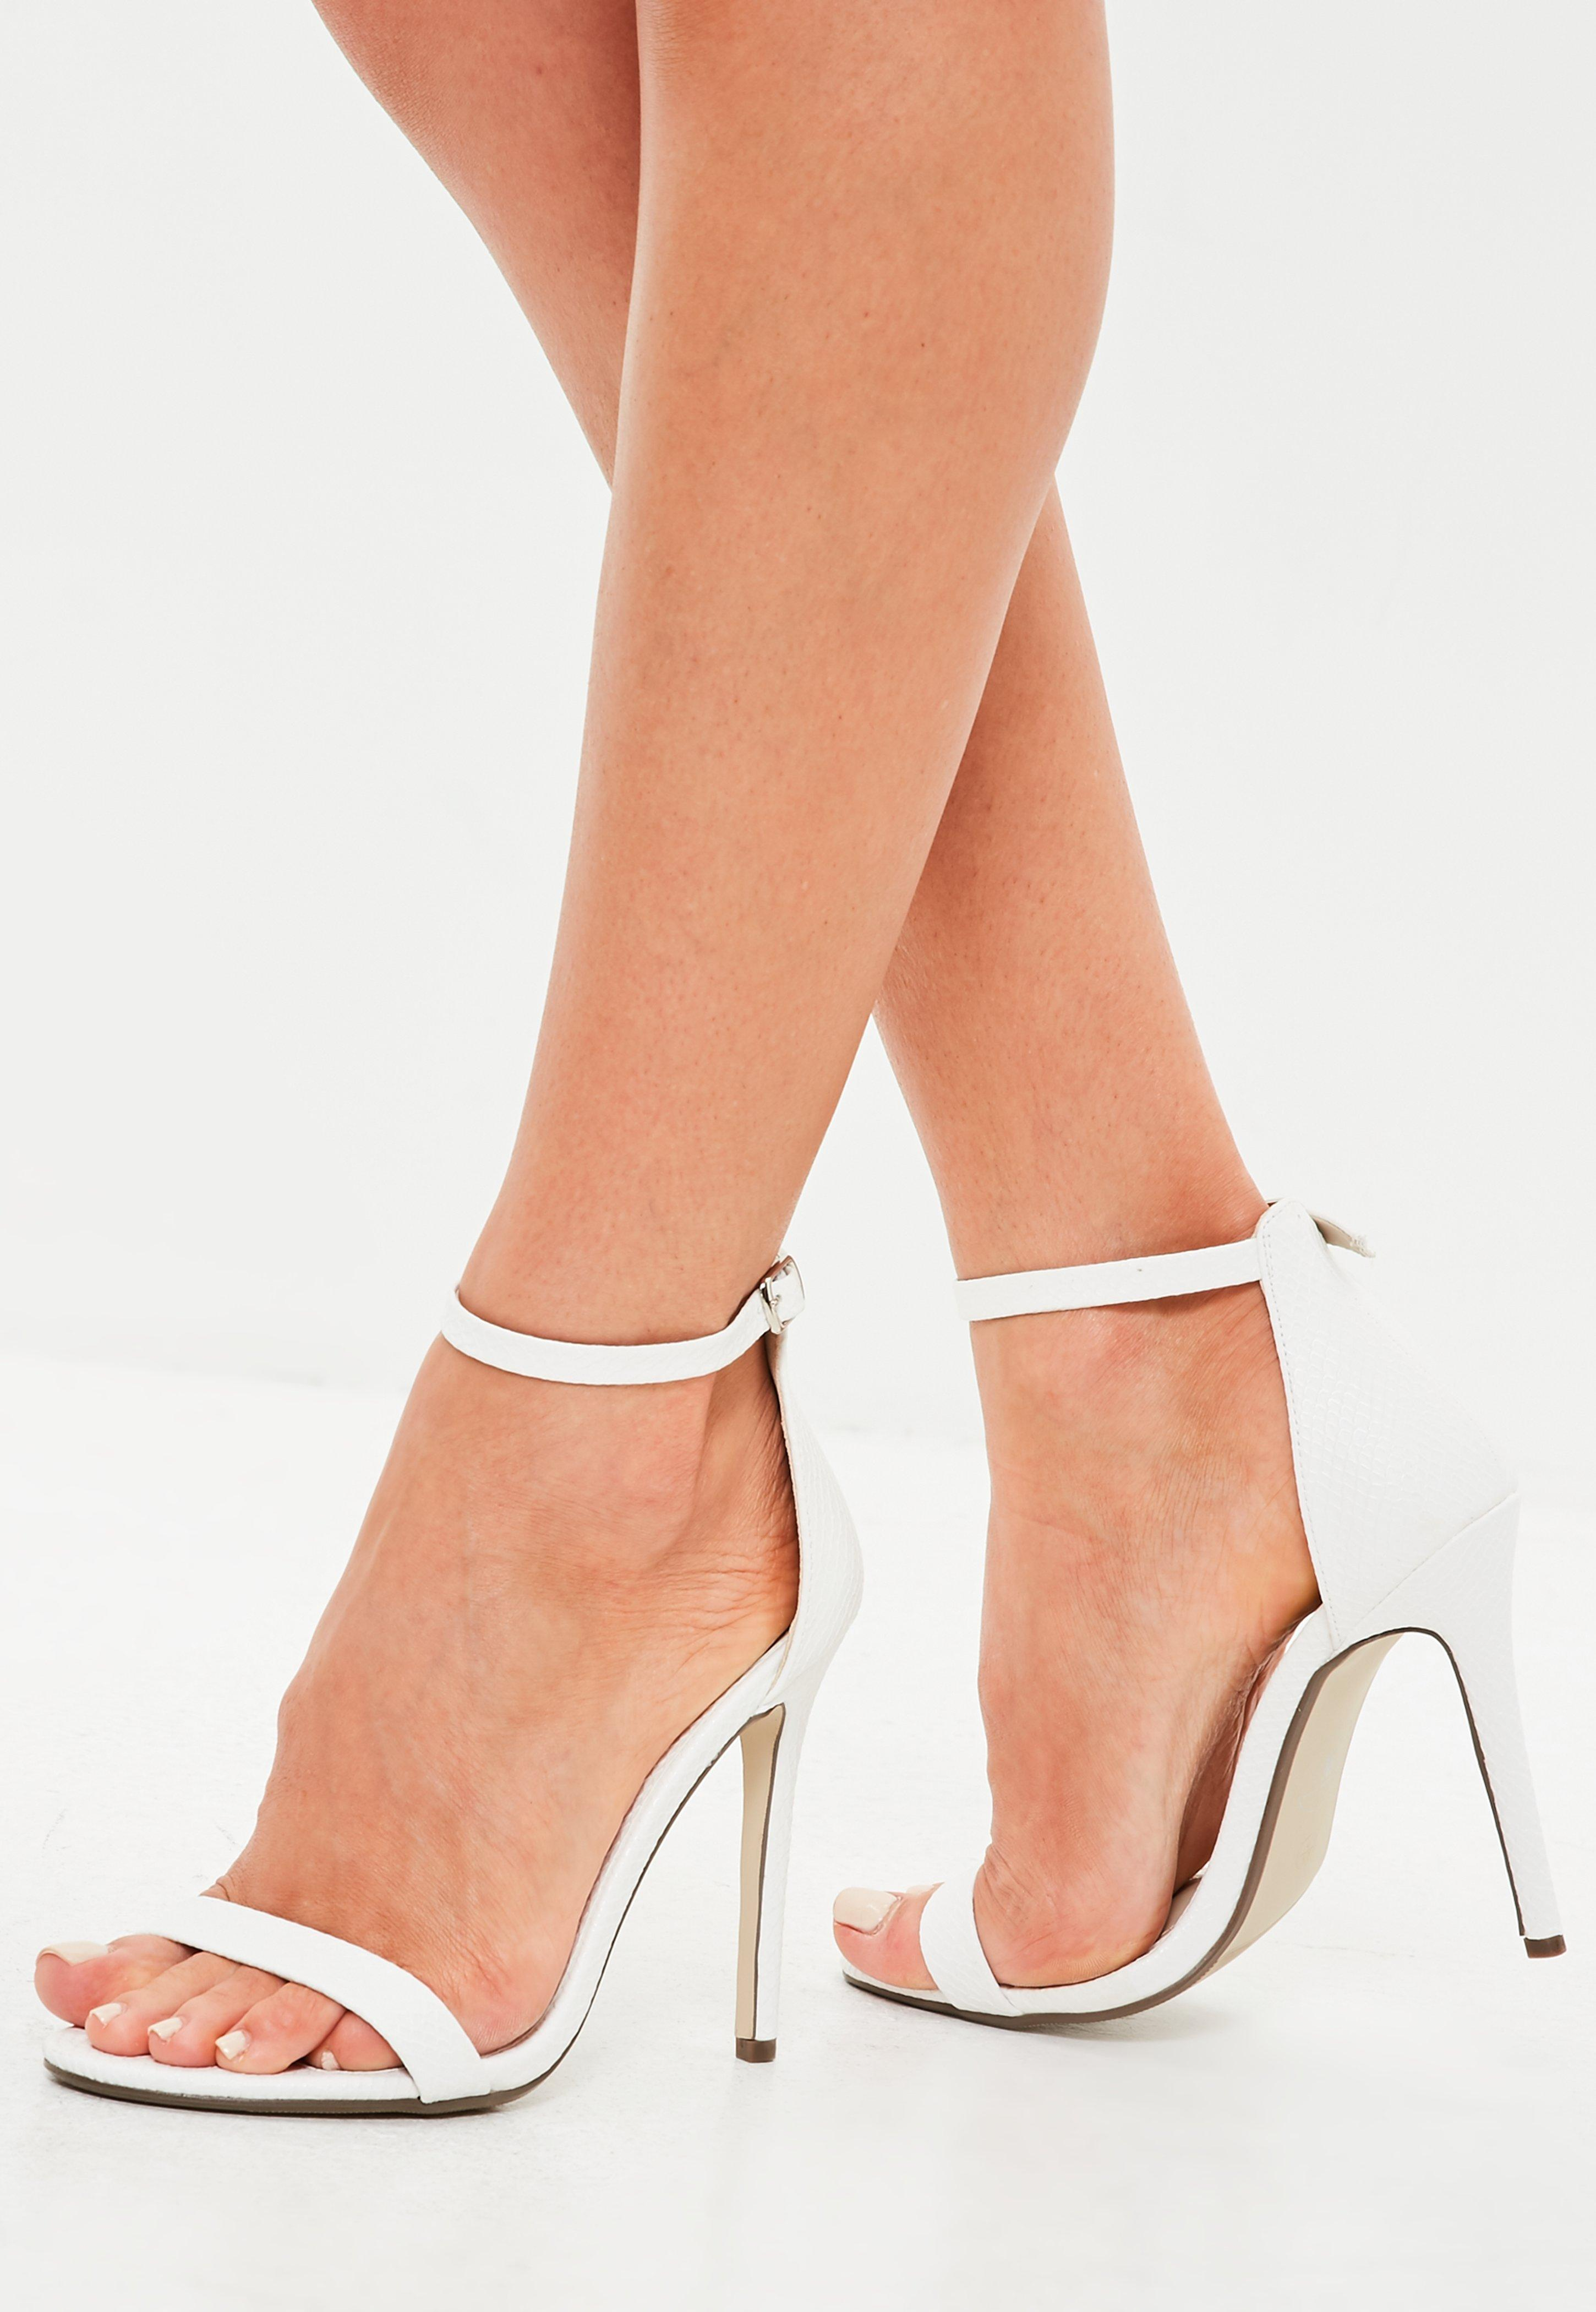 65f9d0d8ac1 Missguided White Flat Two Strap Barely There Sandals in White - Lyst